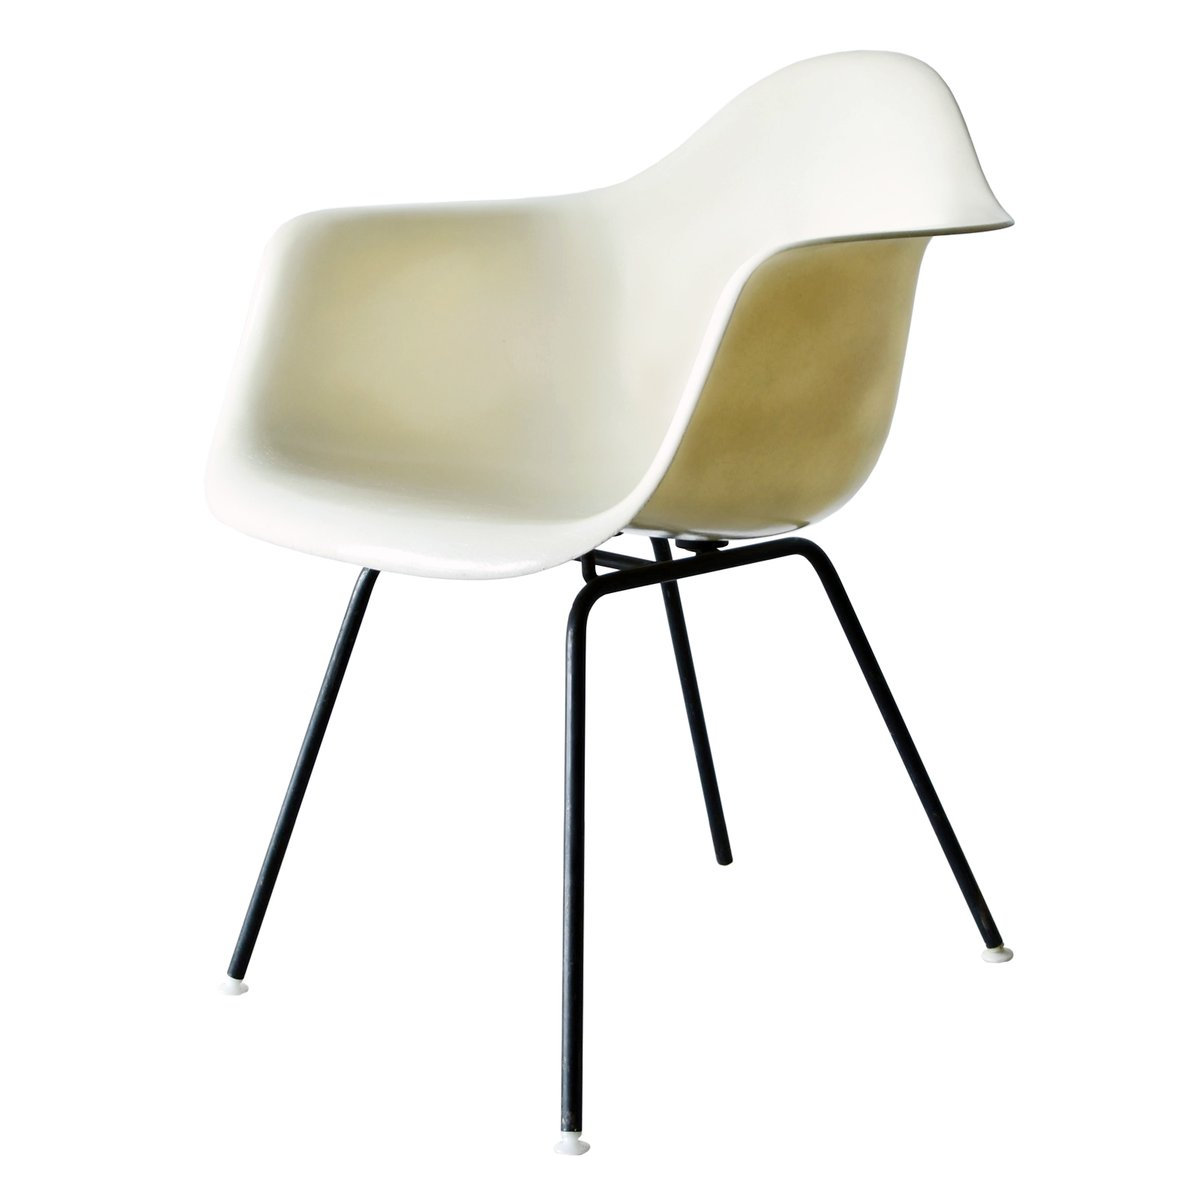 Dax chair by charles and ray eames for herman miller 1962 for Eames chair nachbau deutschland